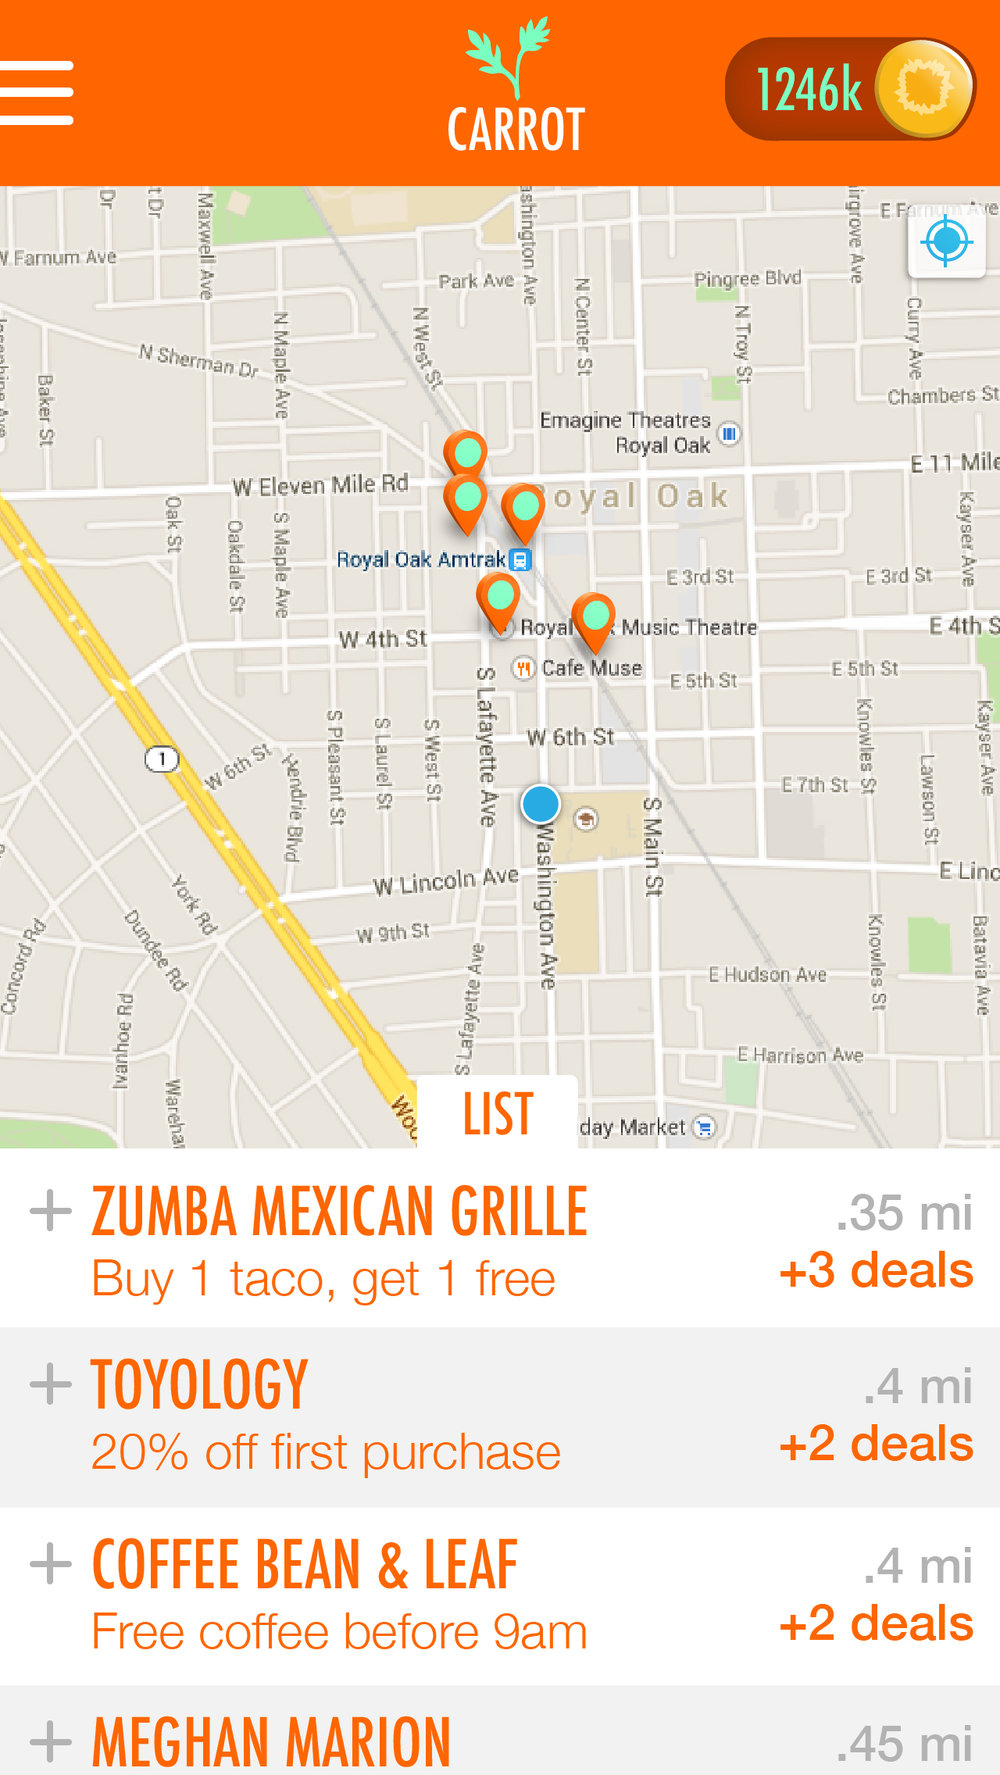 The home screen displays merchants and deals based on proximity in a map or list view.